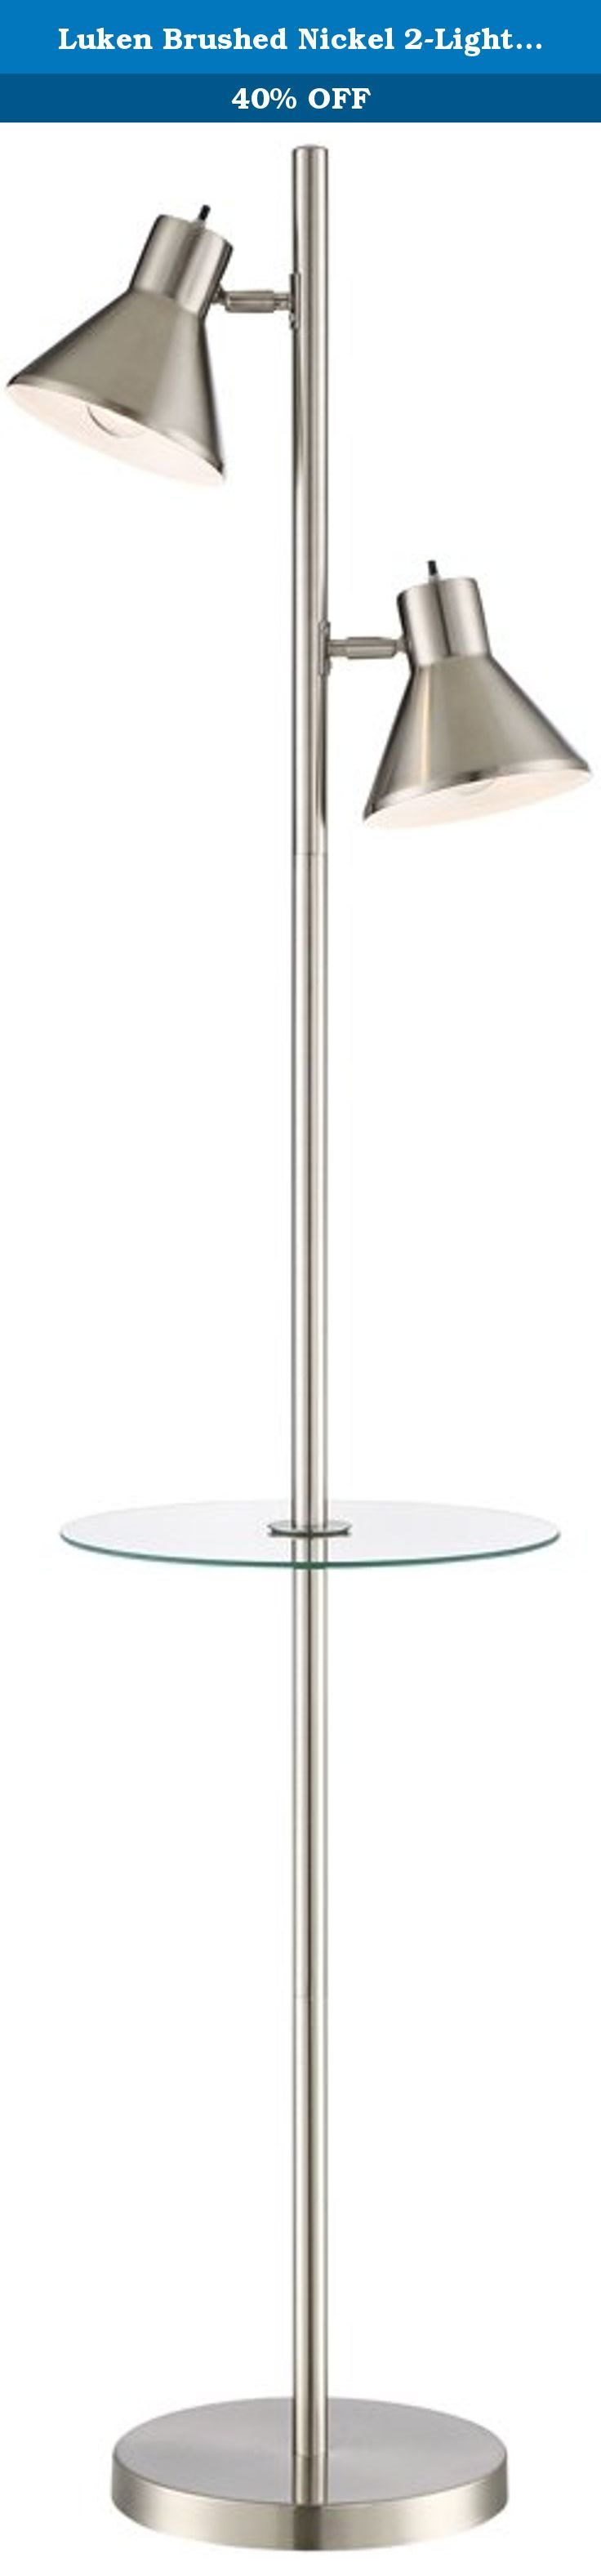 "Luken Brushed Nickel 2-Light Tree Floor Lamp with Table. Two spotlight style shades allow focused lighting in this contemporary tree floor lamp. A clear tempered glass tray table is perfect for drinks, remote or alarm clock. Brushed nickel finish. - 2-light tree floor lamp with glass table. - Brushed nickel finish, metal construction. - Adjustable lamp heads with individual on/off switches. - Two maximum 40 watt or equivalent bulbs (not included). - Measures 65"" high, tempered glass table…"